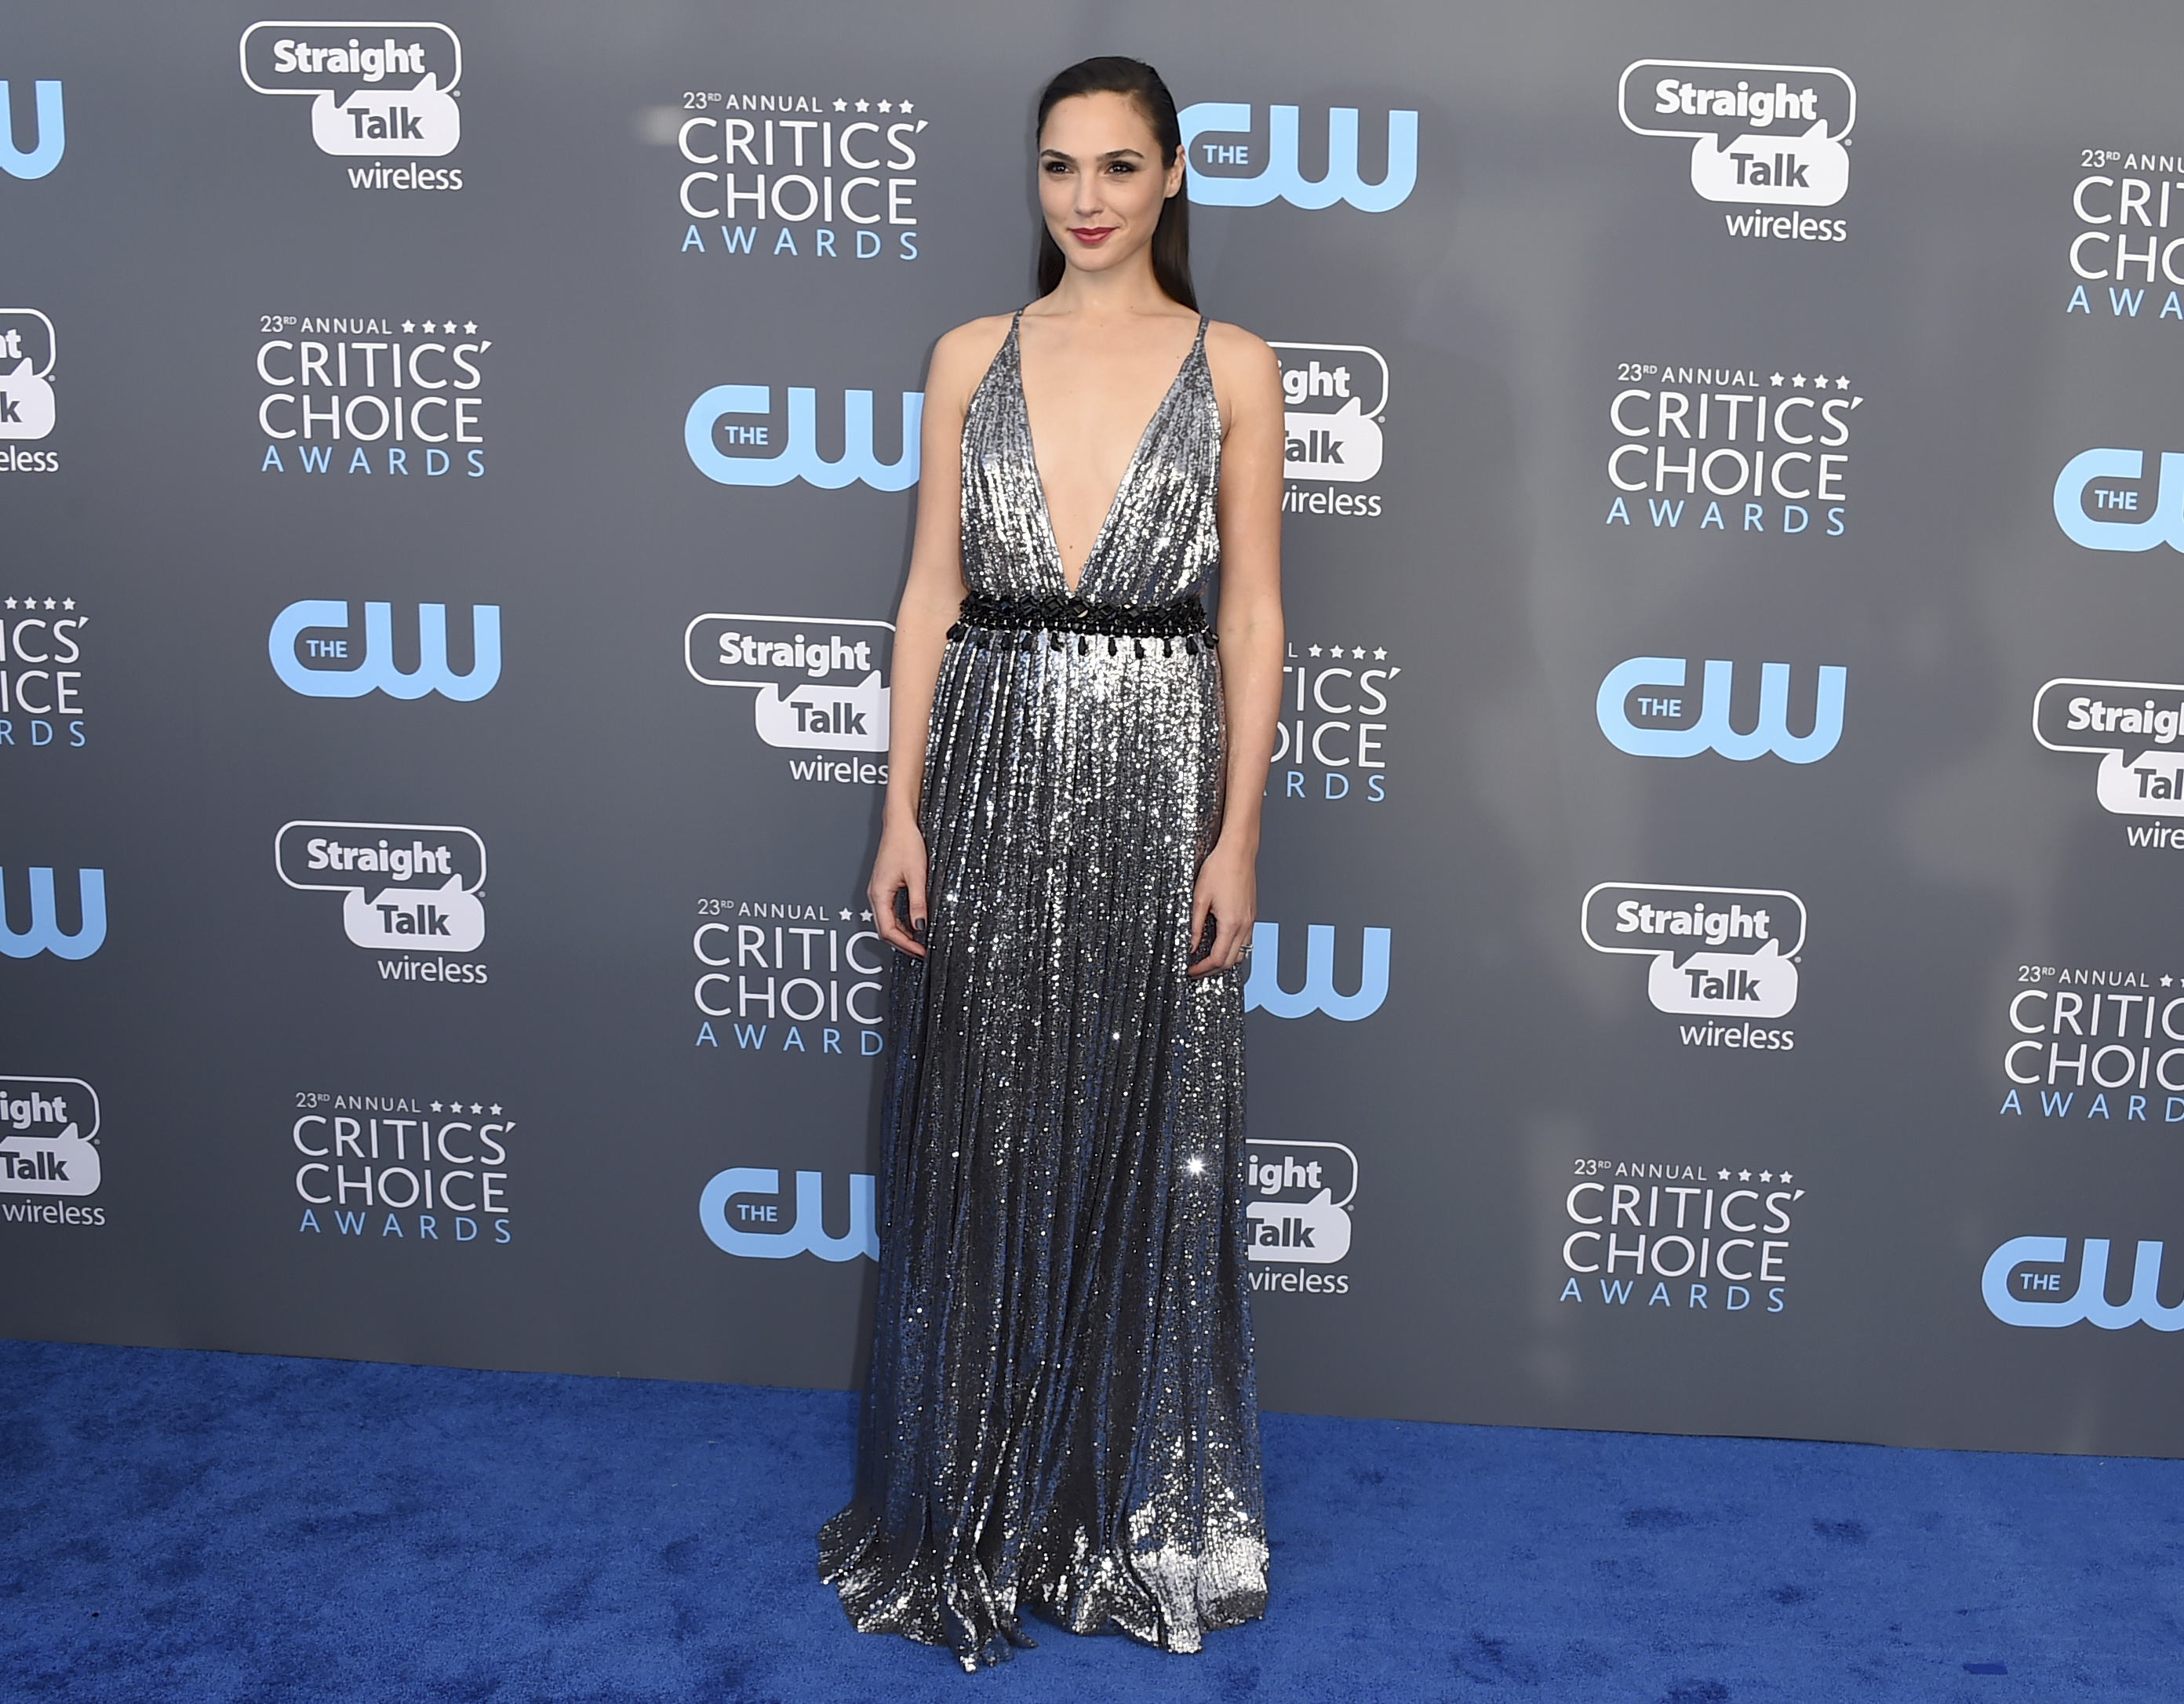 <div class='meta'><div class='origin-logo' data-origin='AP'></div><span class='caption-text' data-credit='Jordan Strauss/Invision/AP'>Gal Gadot arrives at the 23rd annual Critics' Choice Awards at the Barker Hangar on Thursday, Jan. 11, 2018, in Santa Monica, Calif.</span></div>